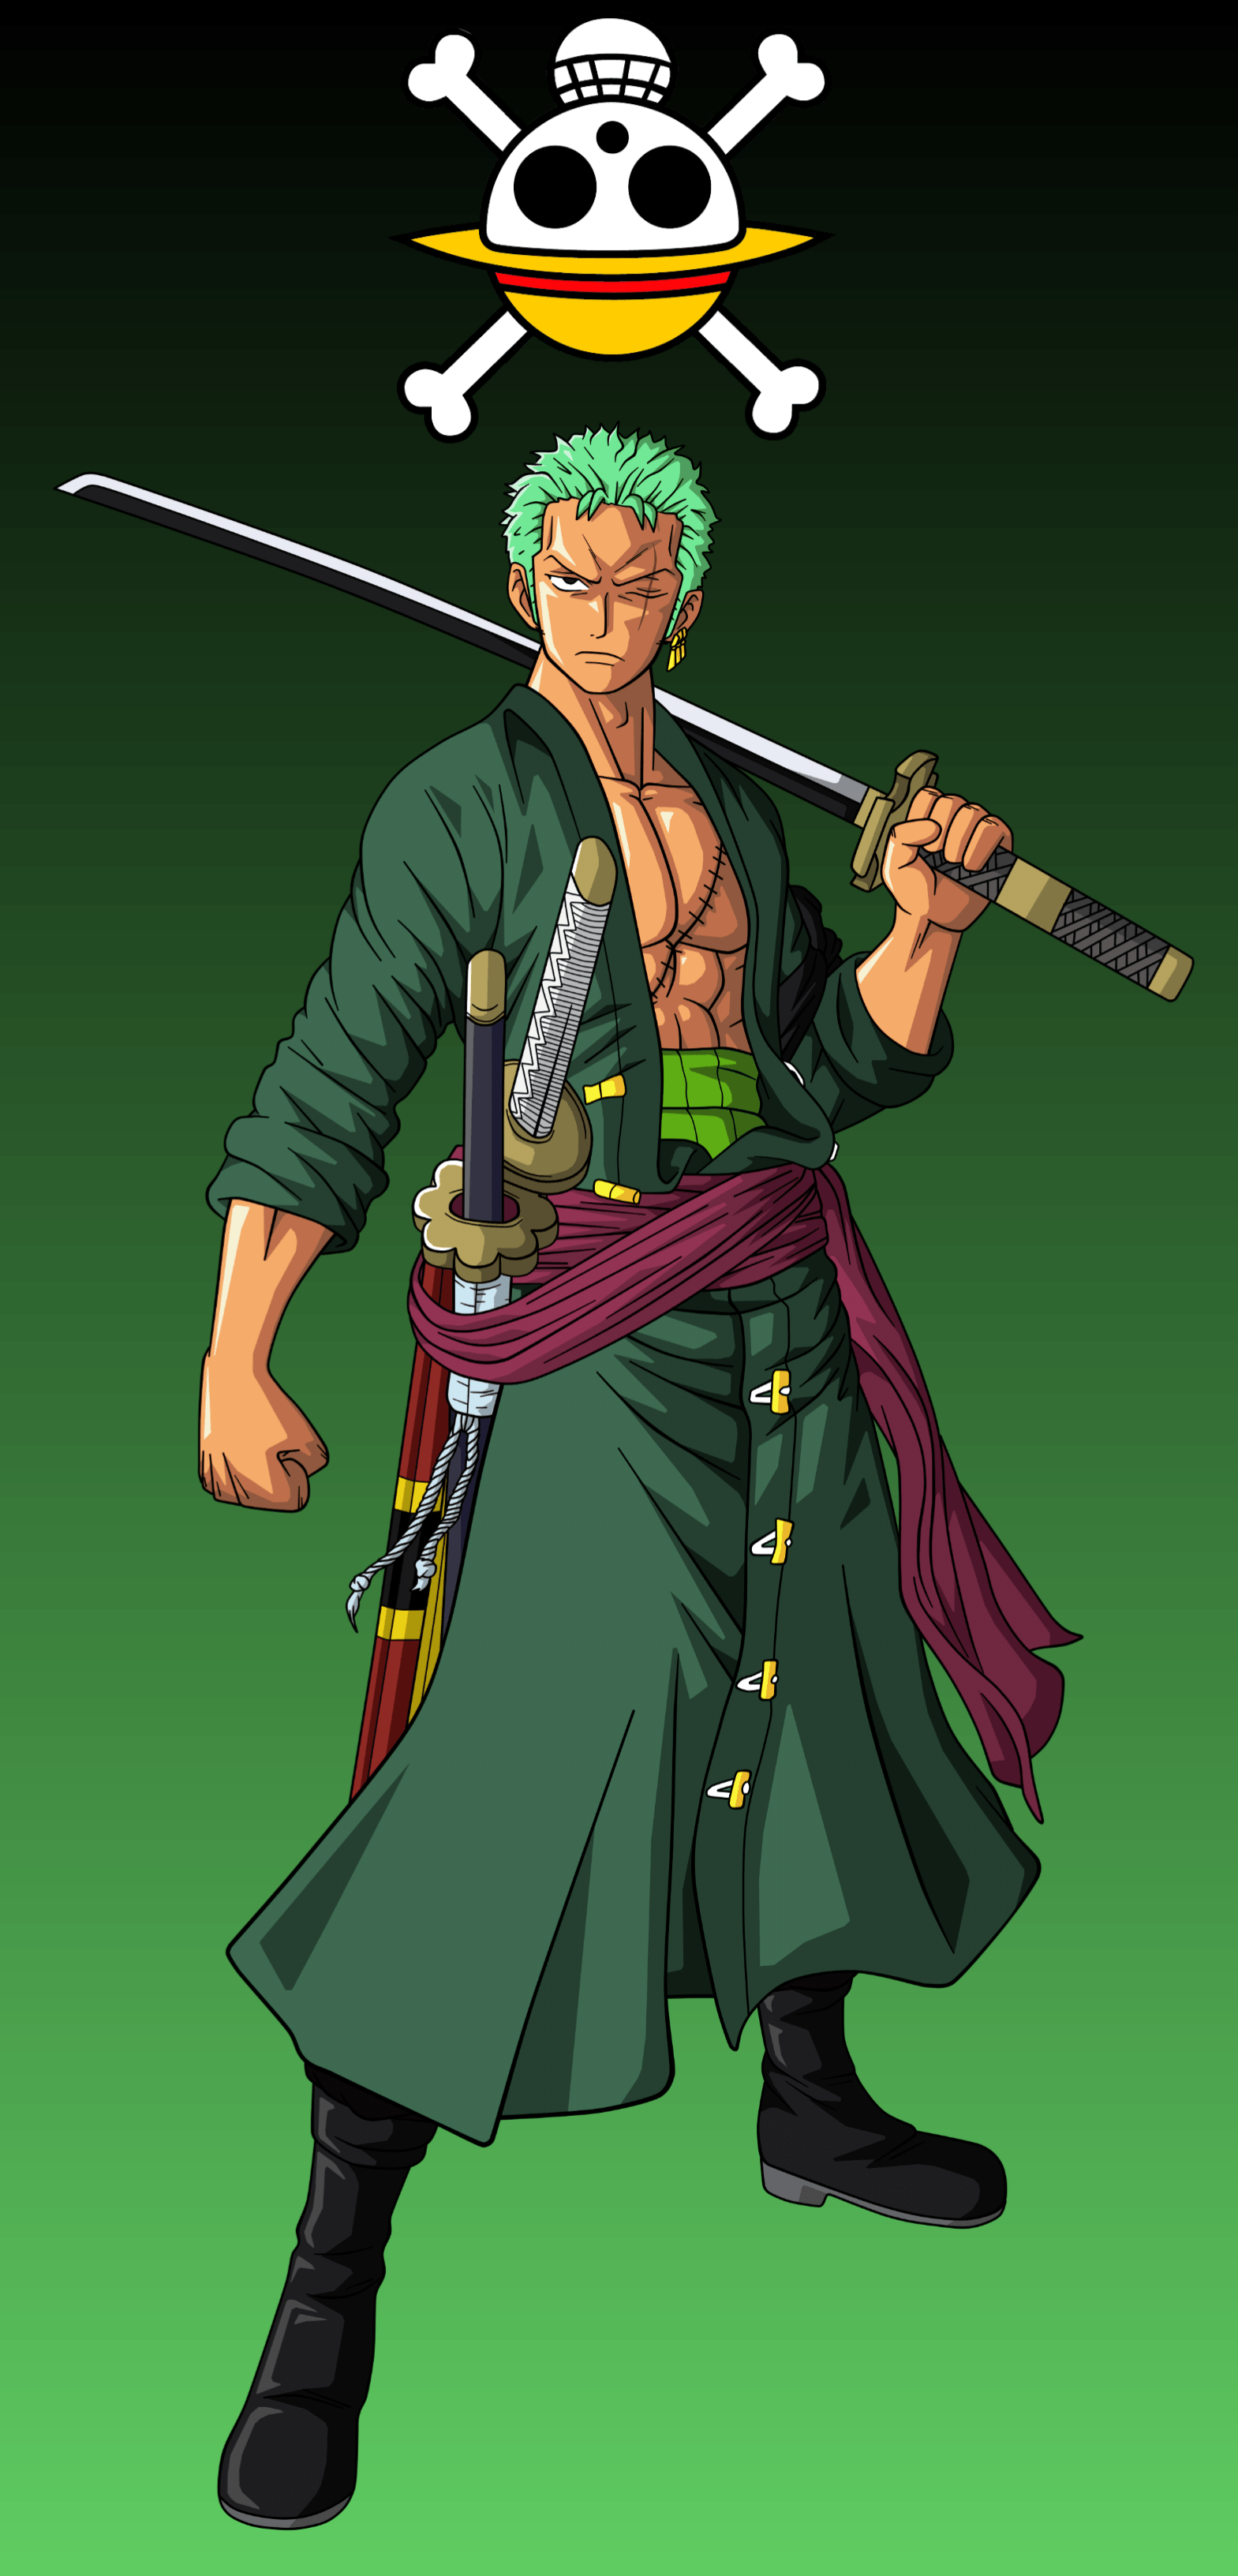 One Piece Zoro Wallpapers On Wallpaperdog